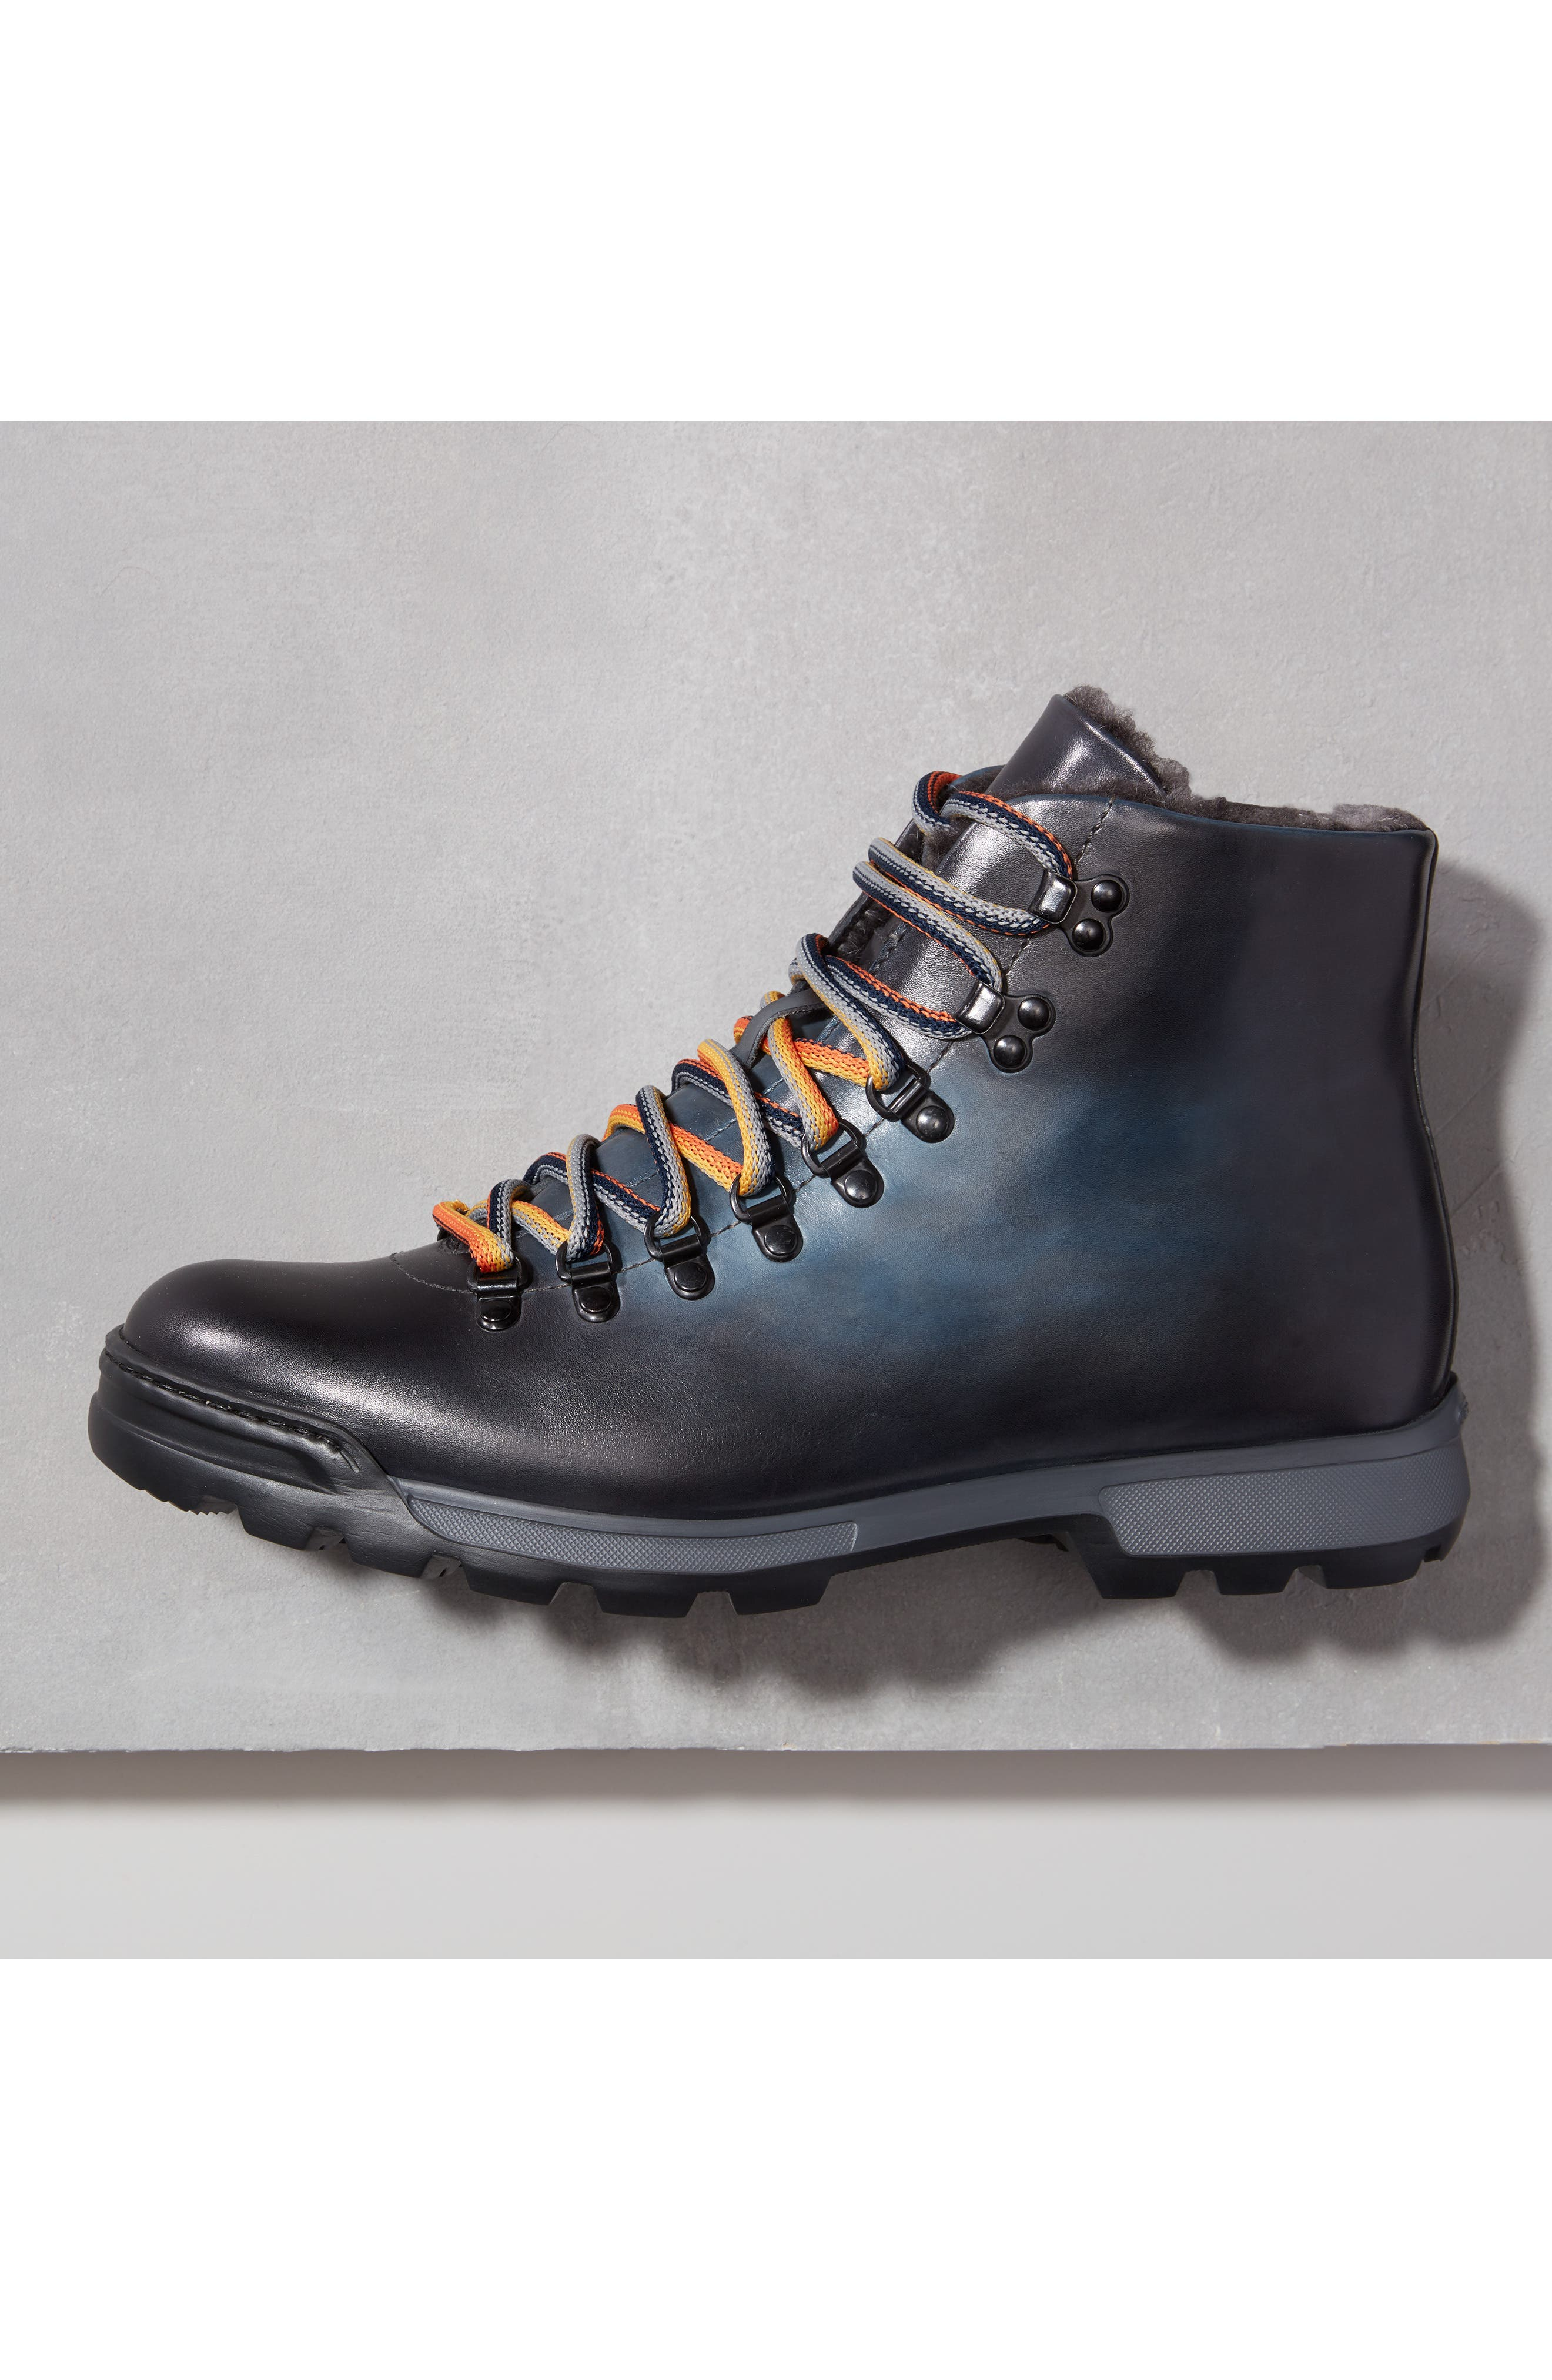 Oberon Genuine Shearling Lace-Up Hiking Boot,                             Alternate thumbnail 9, color,                             NAVY LEATHER